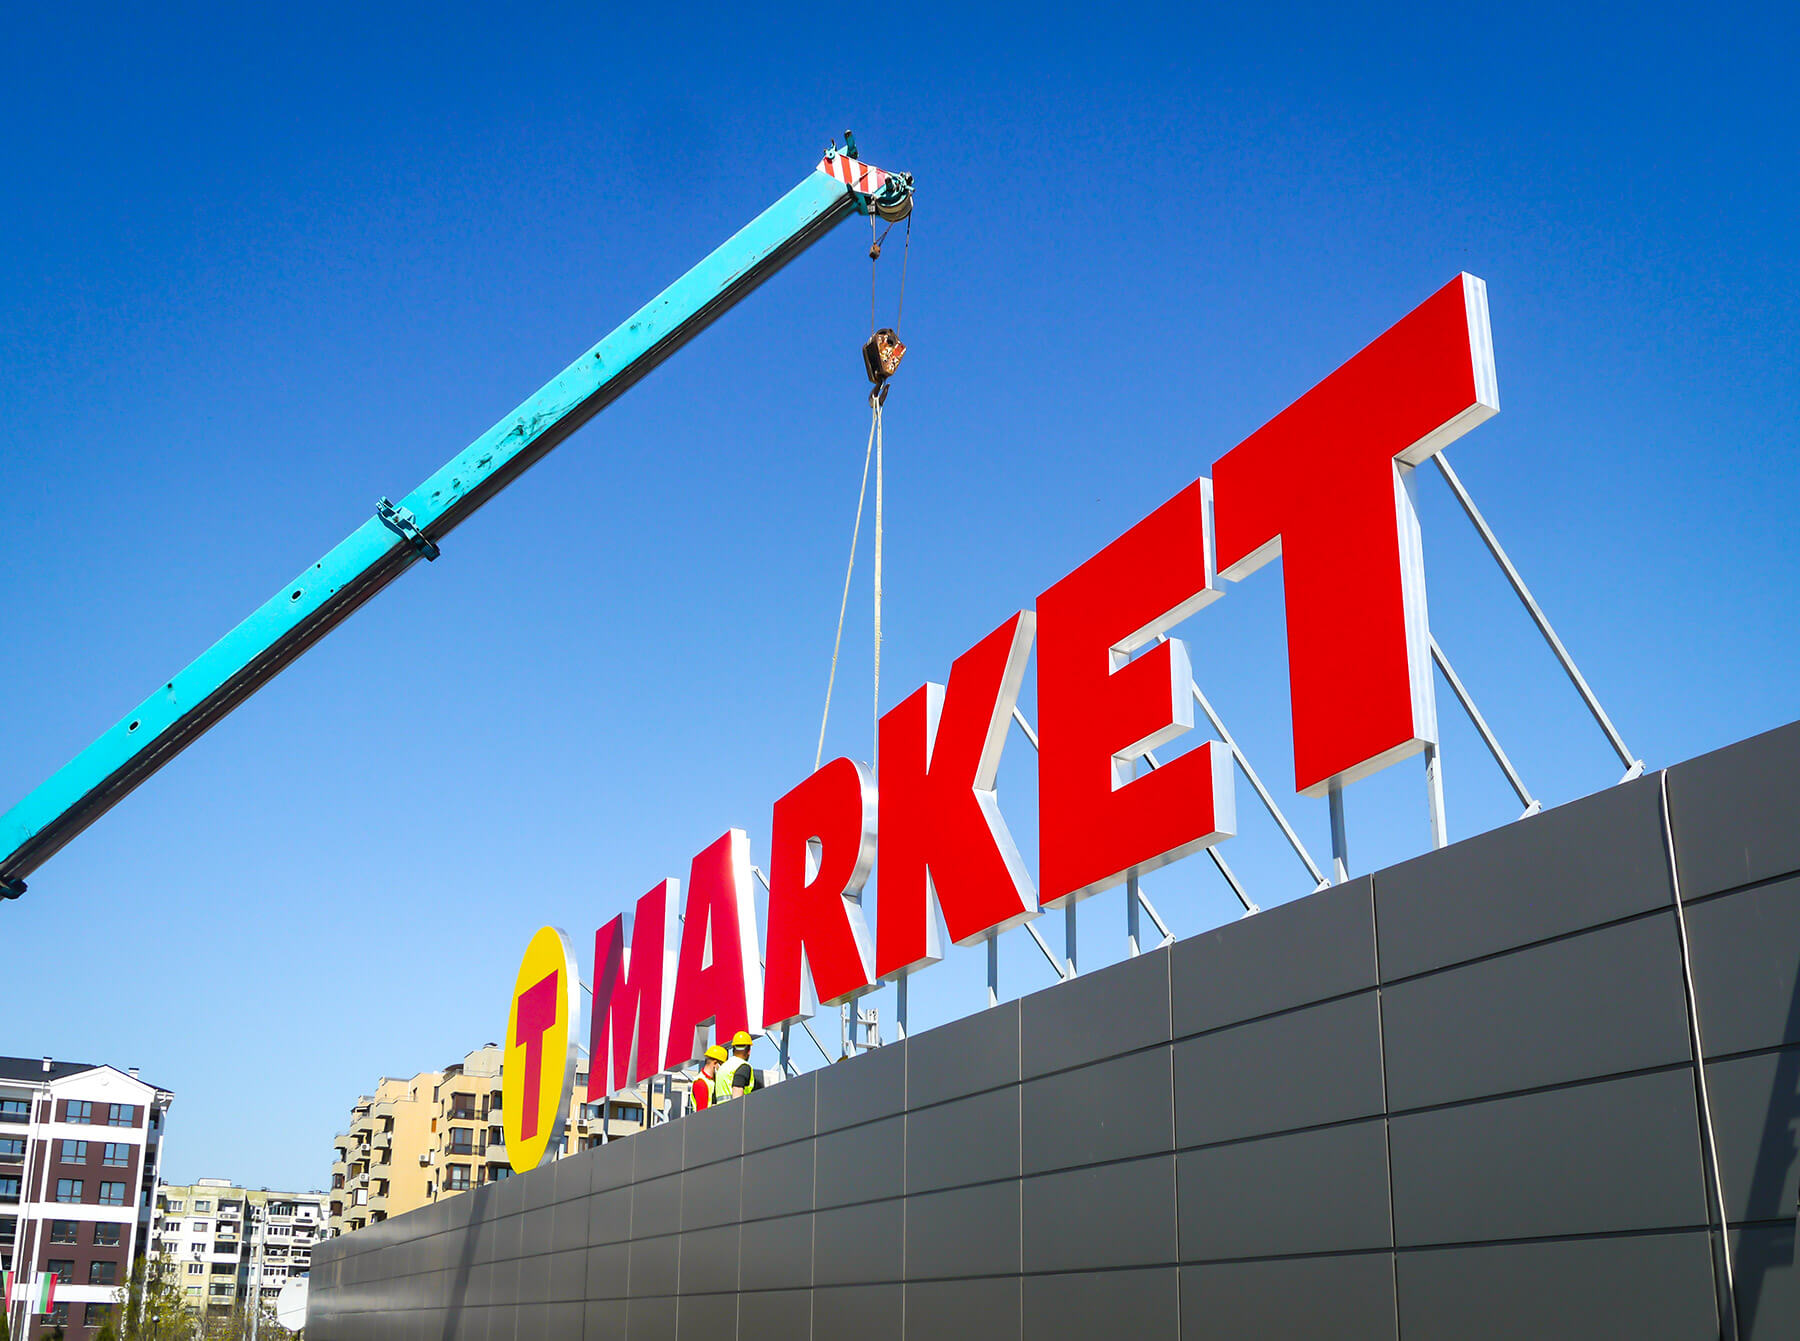 Giant letters mounting